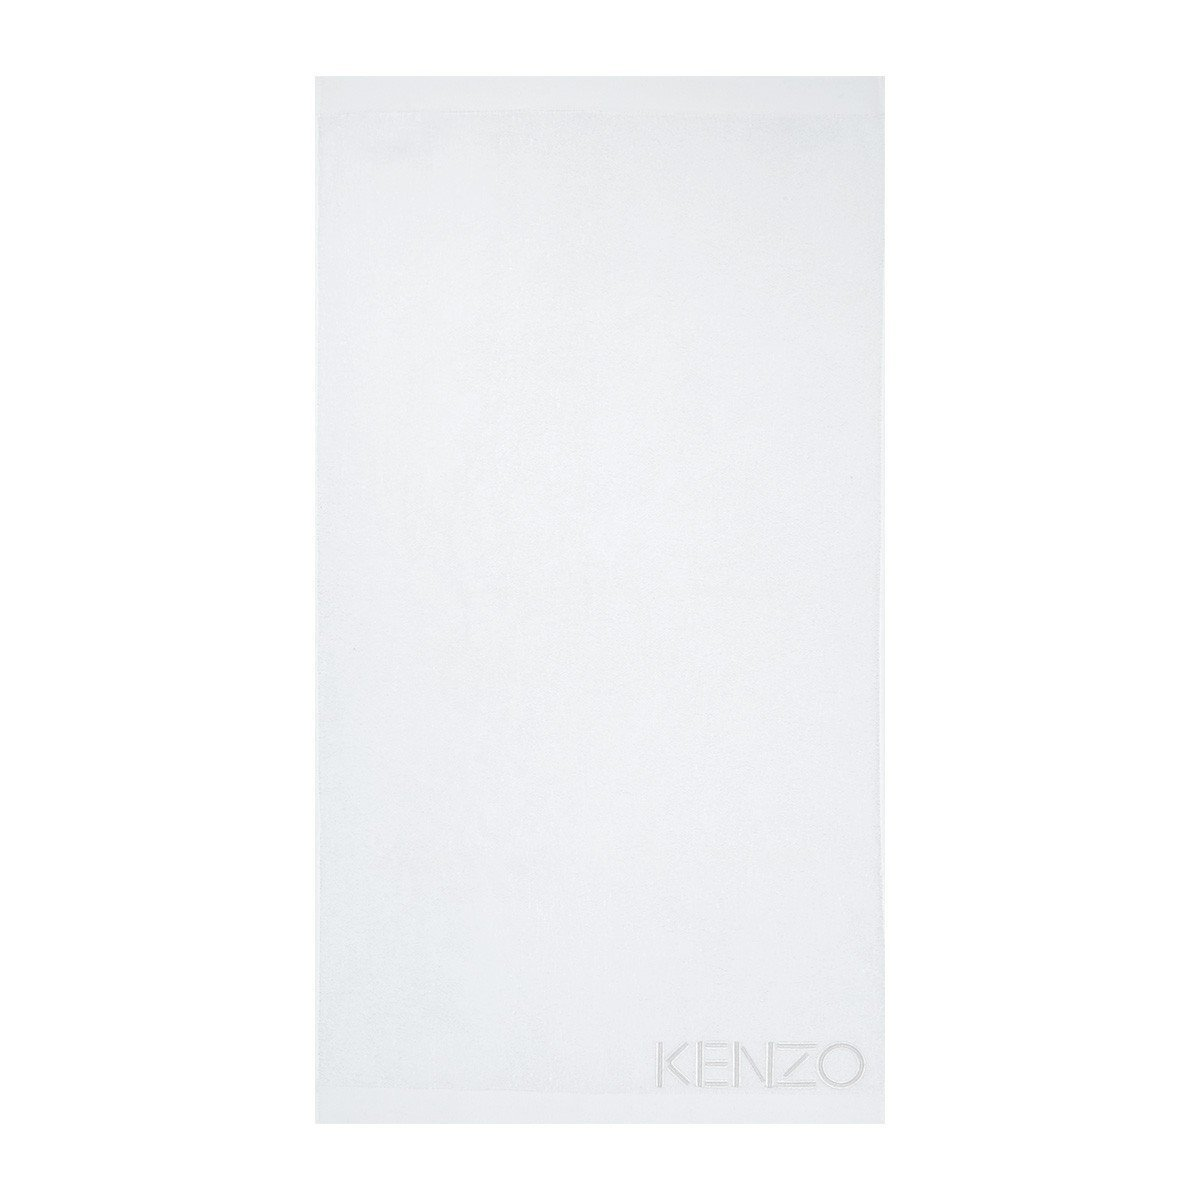 Iconic White Guest Towels (Set of 4)